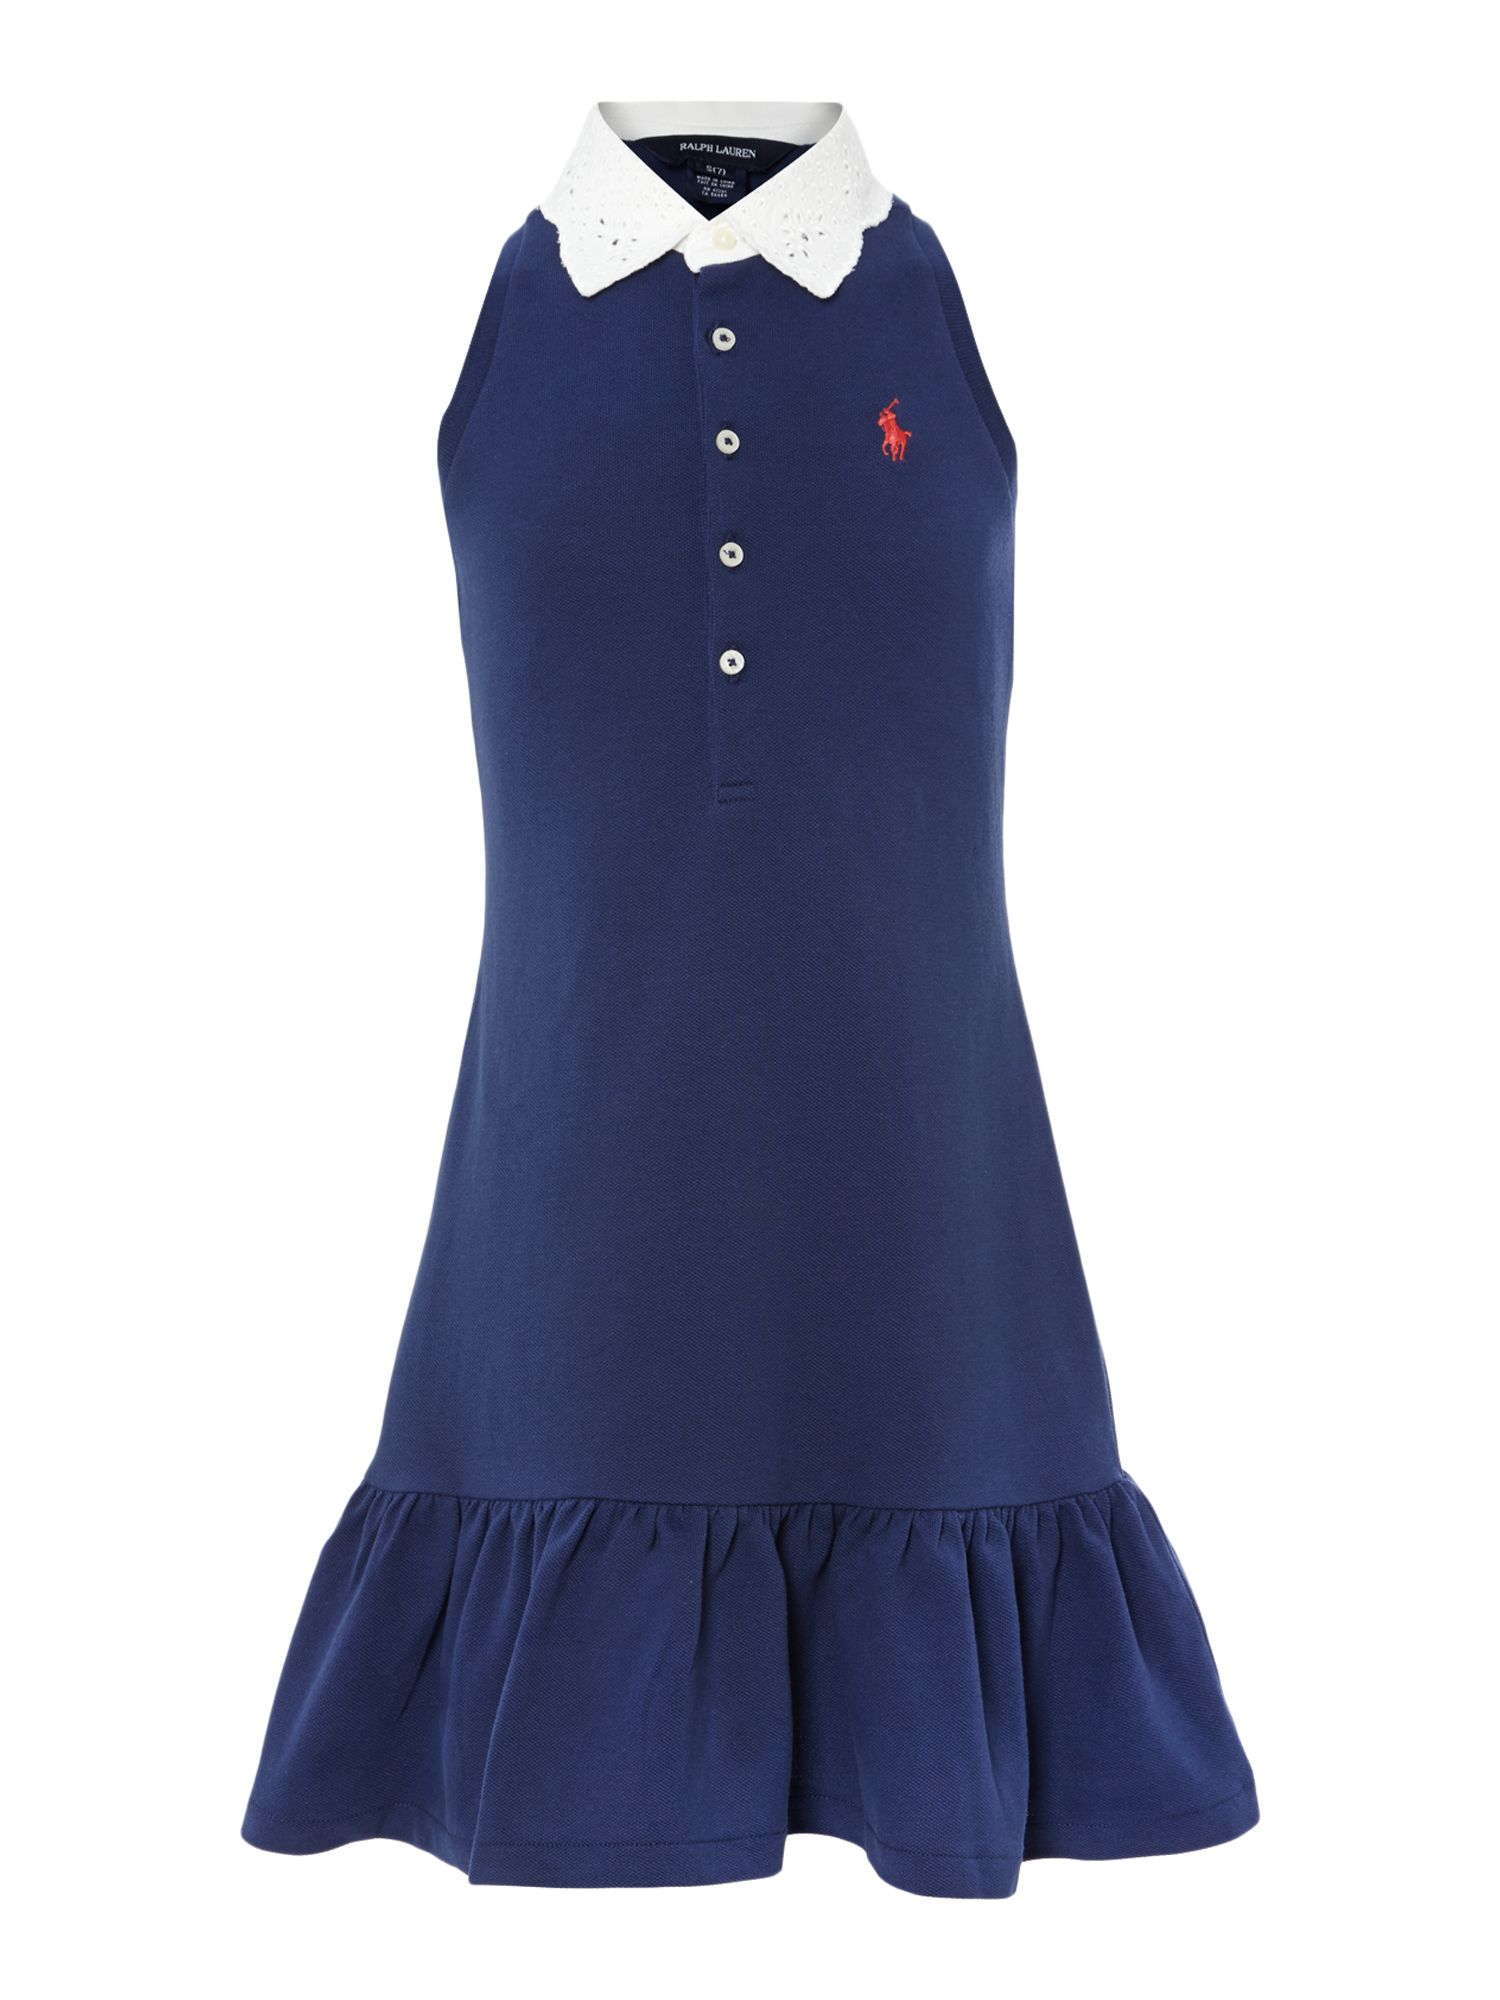 Girls broderie collar dress